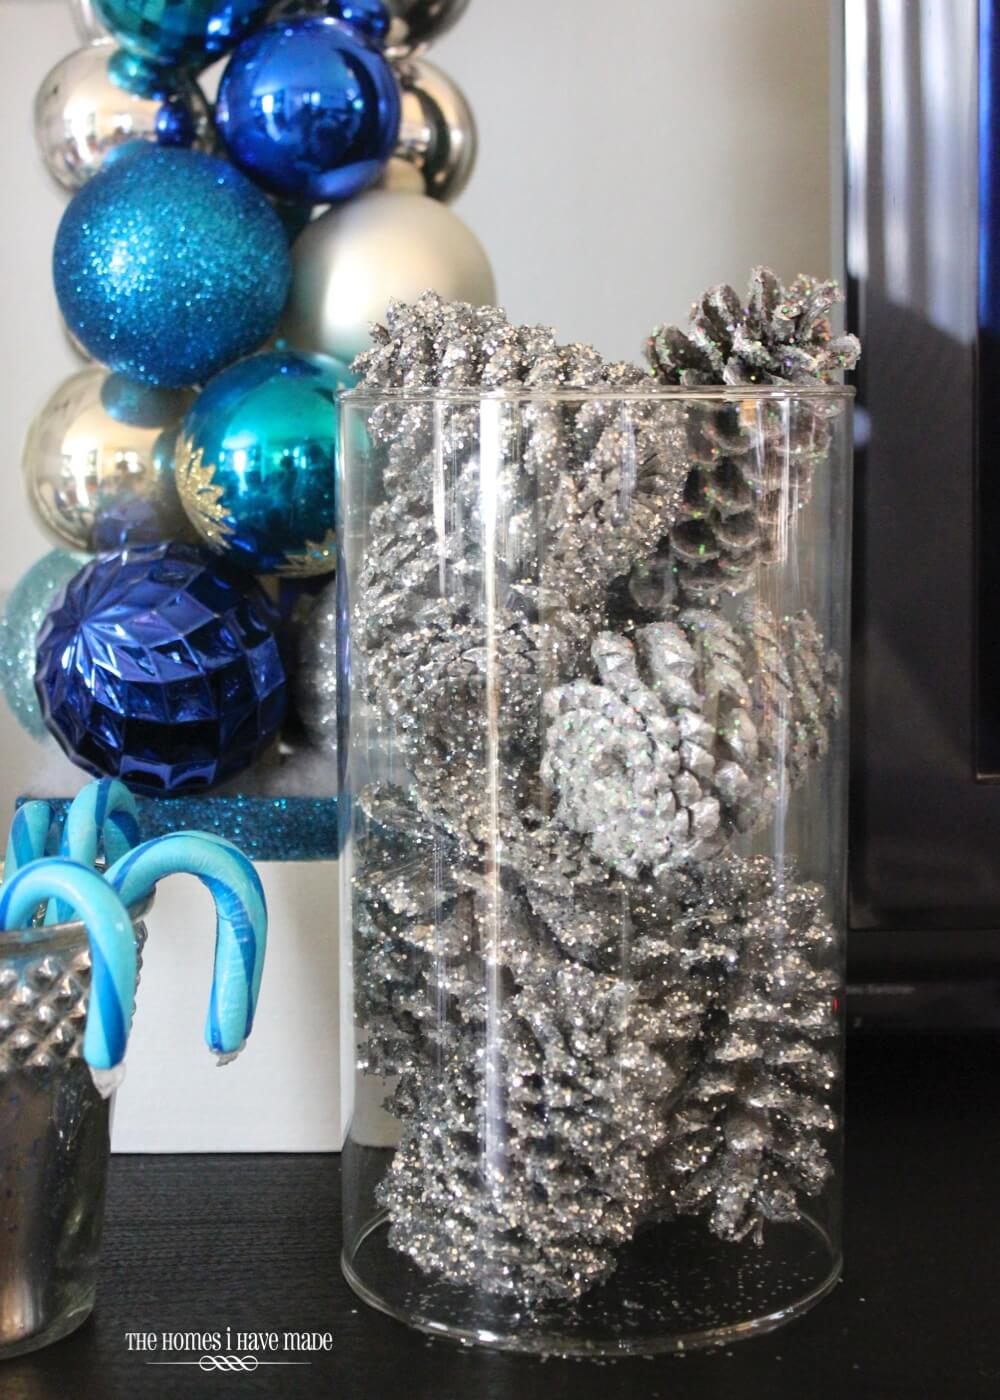 Silver-Dusted Pine Cones in Clear Display Jar